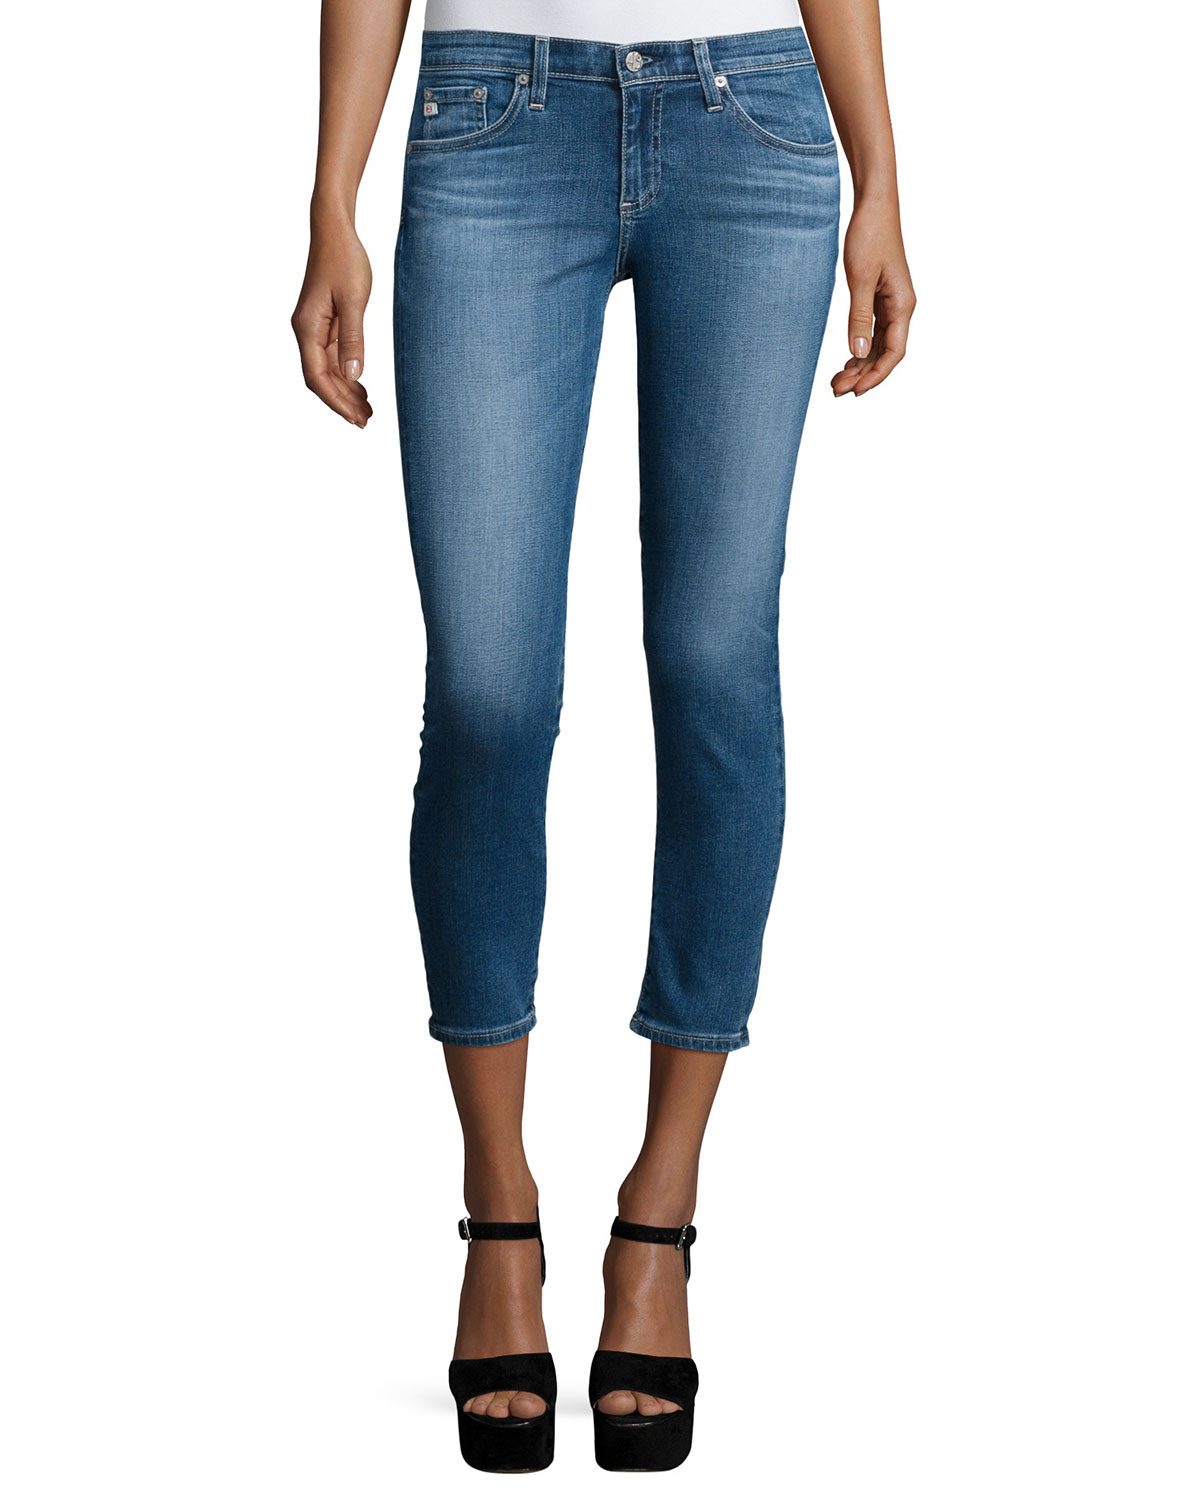 AG The Stilt Cropped Jeans, 13 Years Solitude, Size: 26